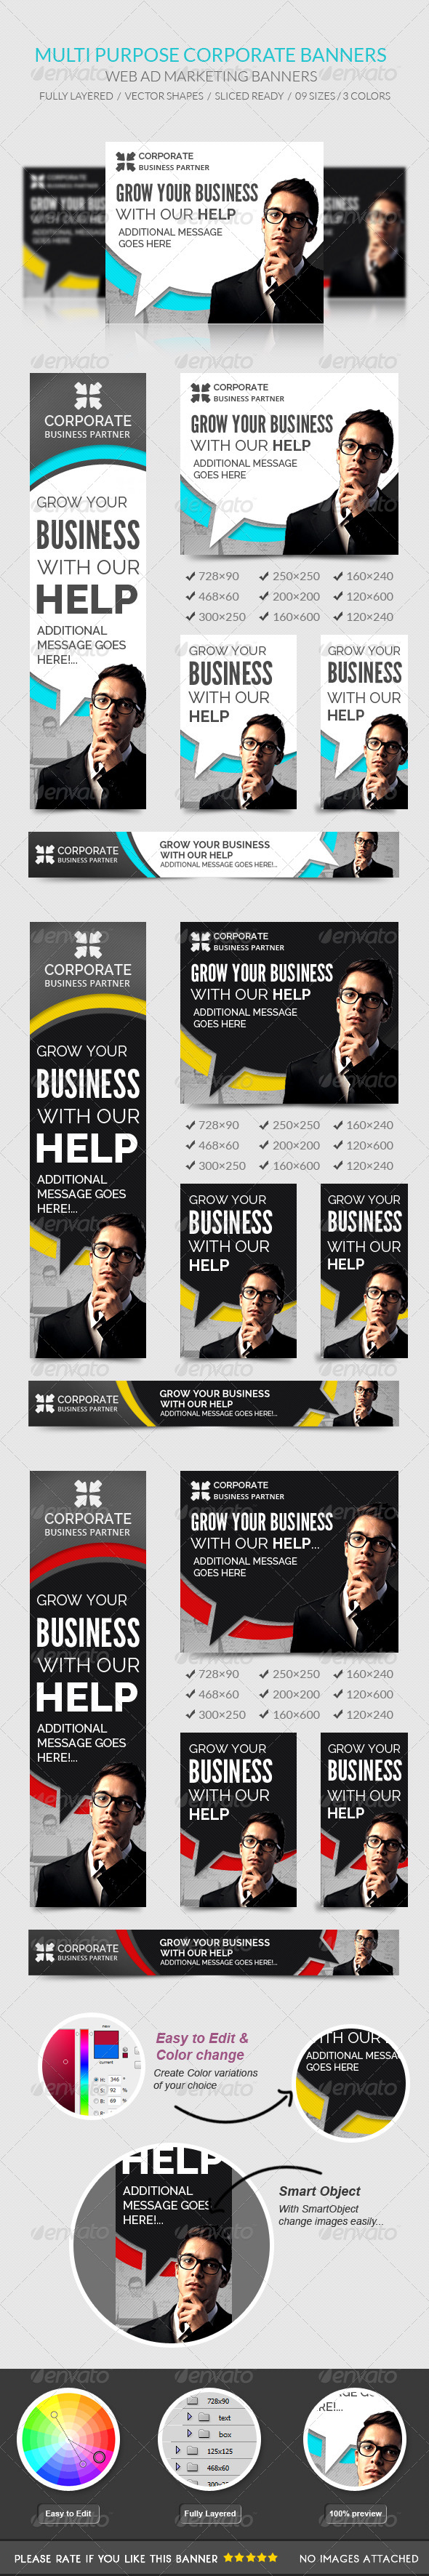 GraphicRiver Corporate Banners 7981256